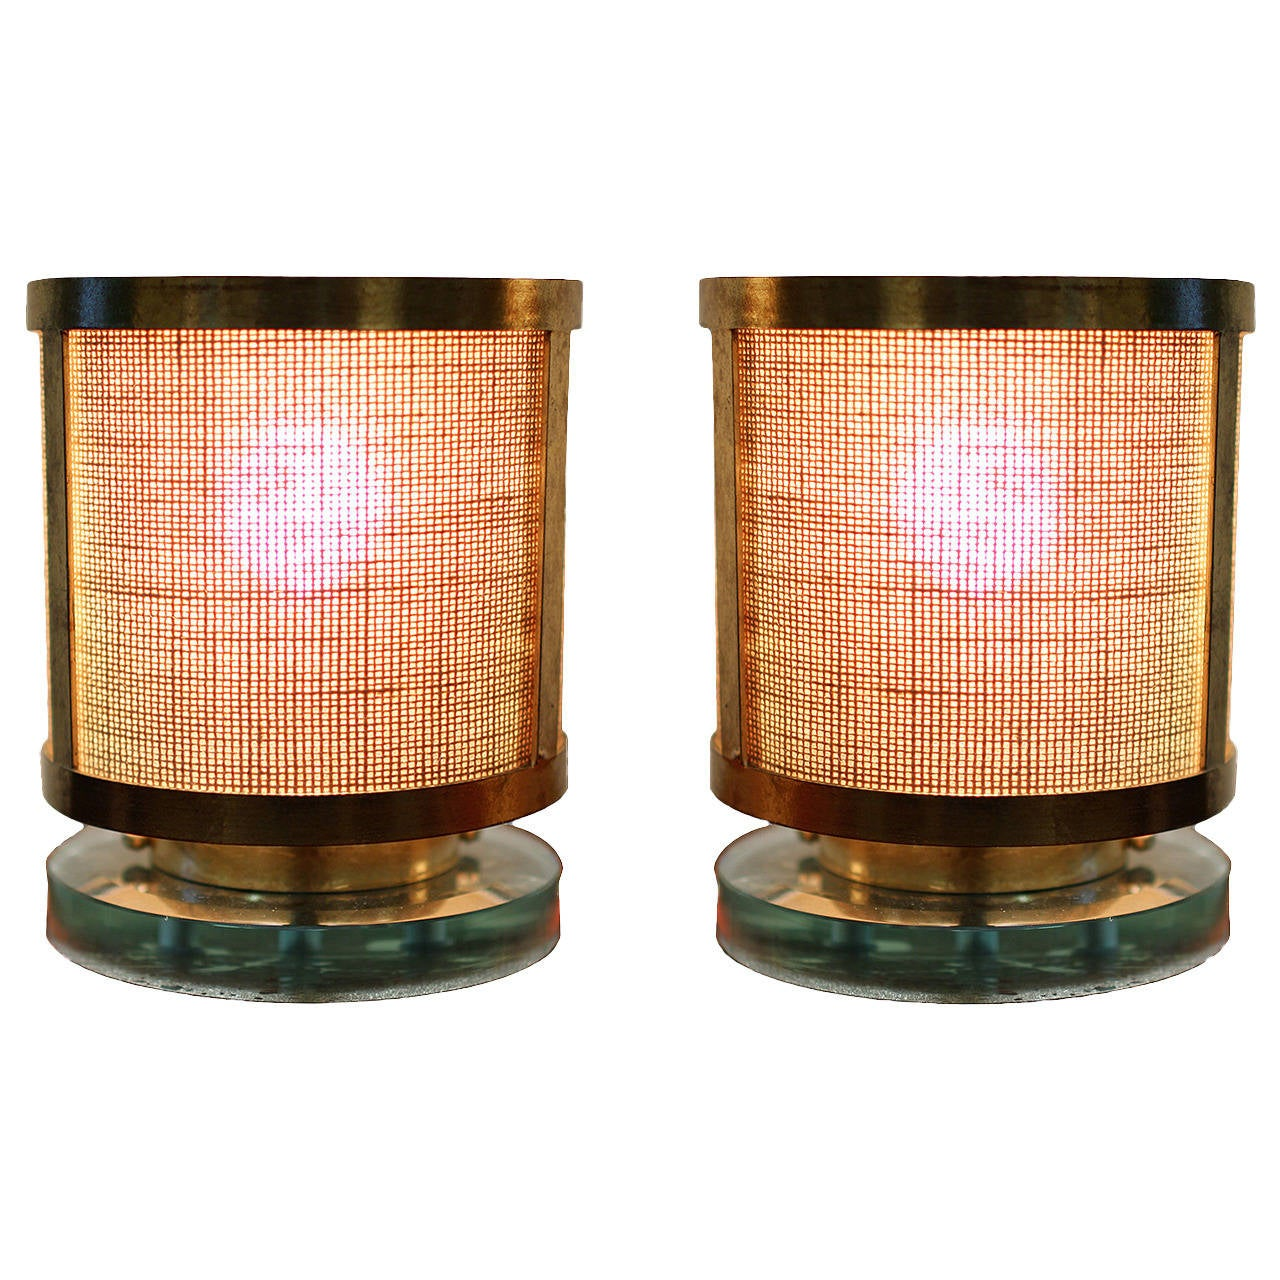 Commercial Table Lamps: 23-Karat Gilt Brass Pair Of Table Lamps From A Parisian